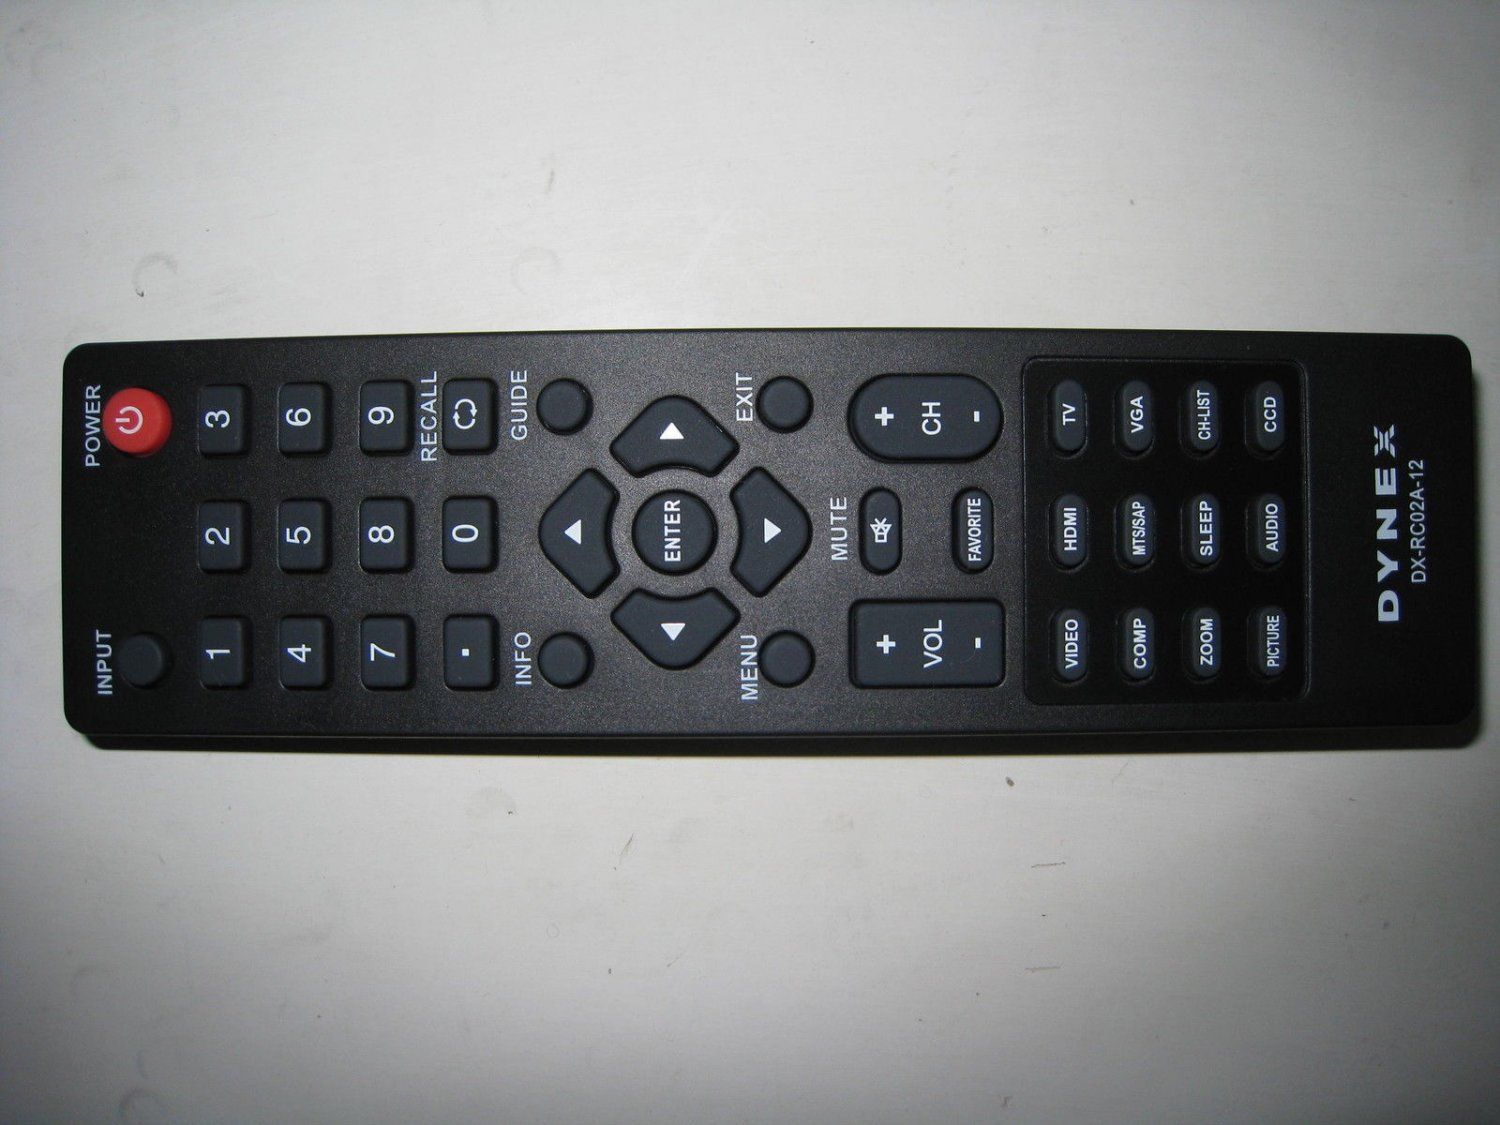 New Original DYNEX LCD LED TV Remote For all DYNEX LED LCD TV